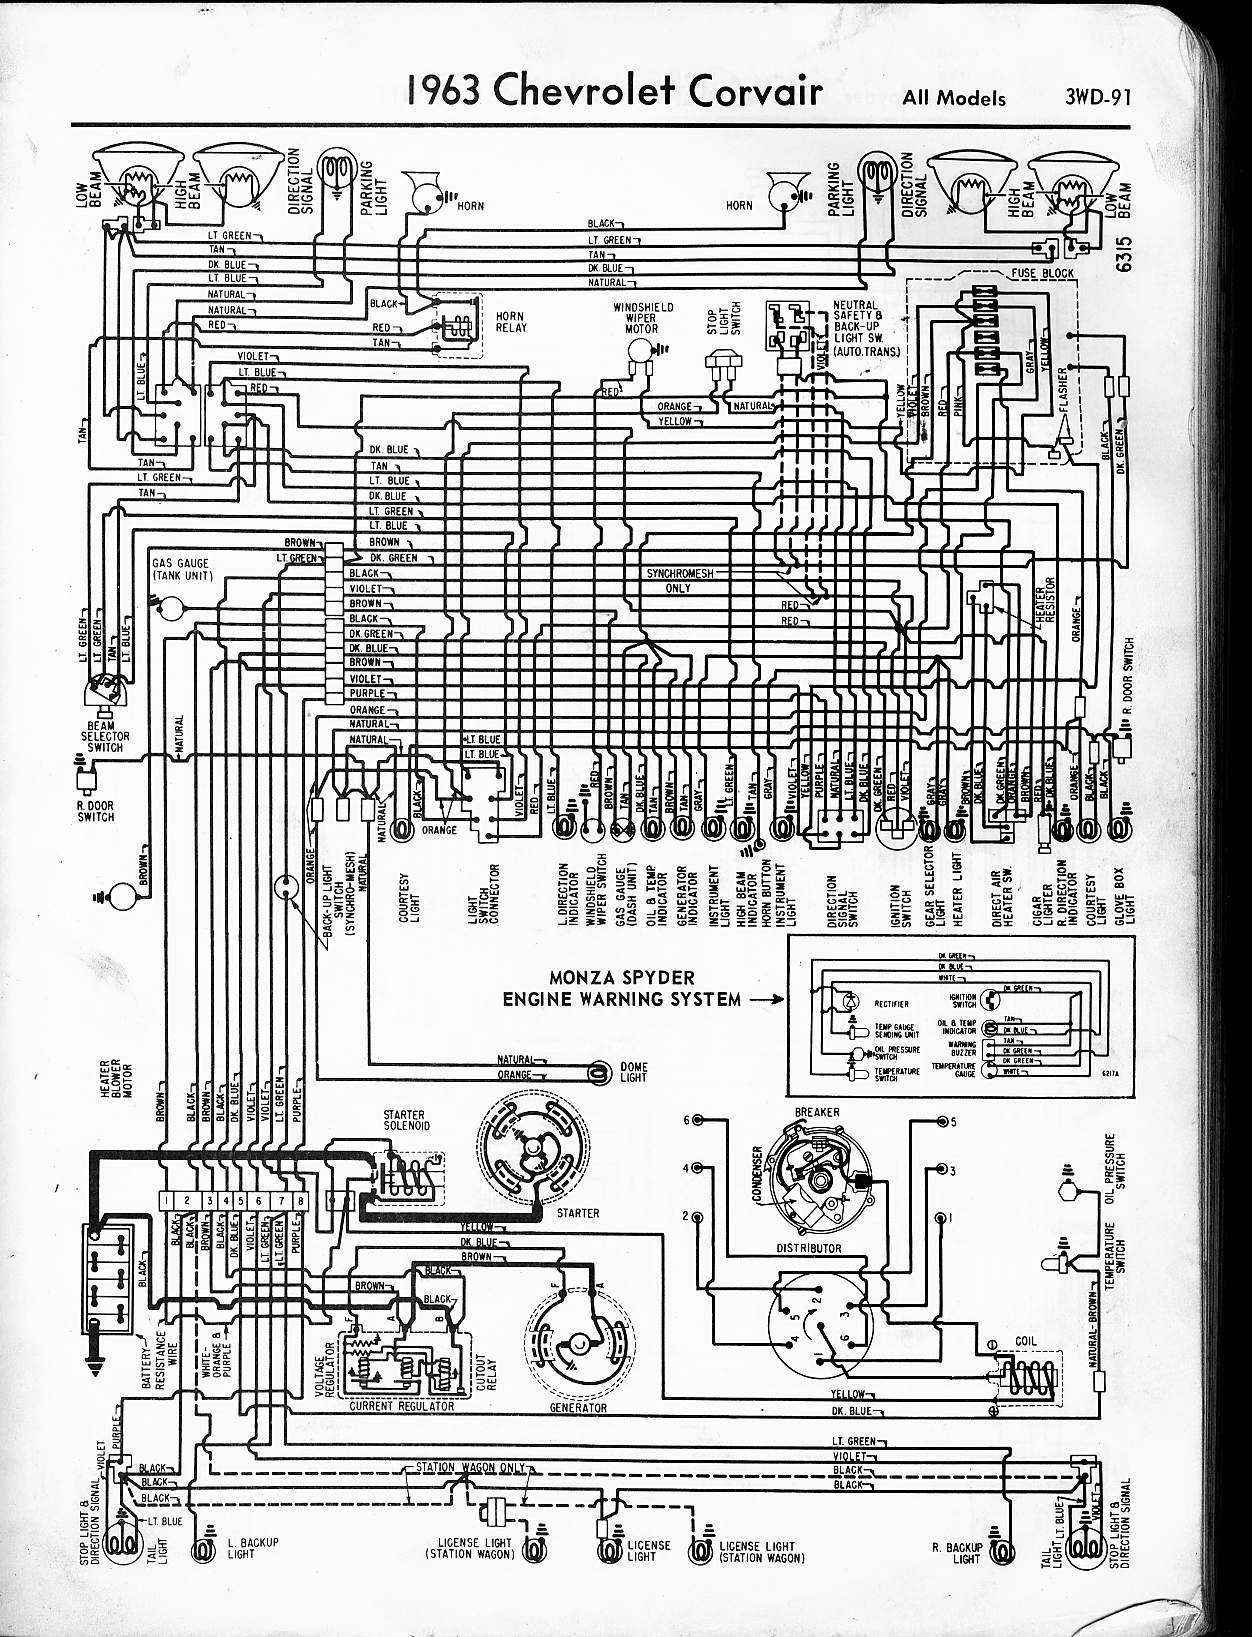 79 Chevy Starter Wiring Library C10 Headlight Diagram 1960 Corvette Detailed Schematics Rh Mrskindsclass Com 68 1979